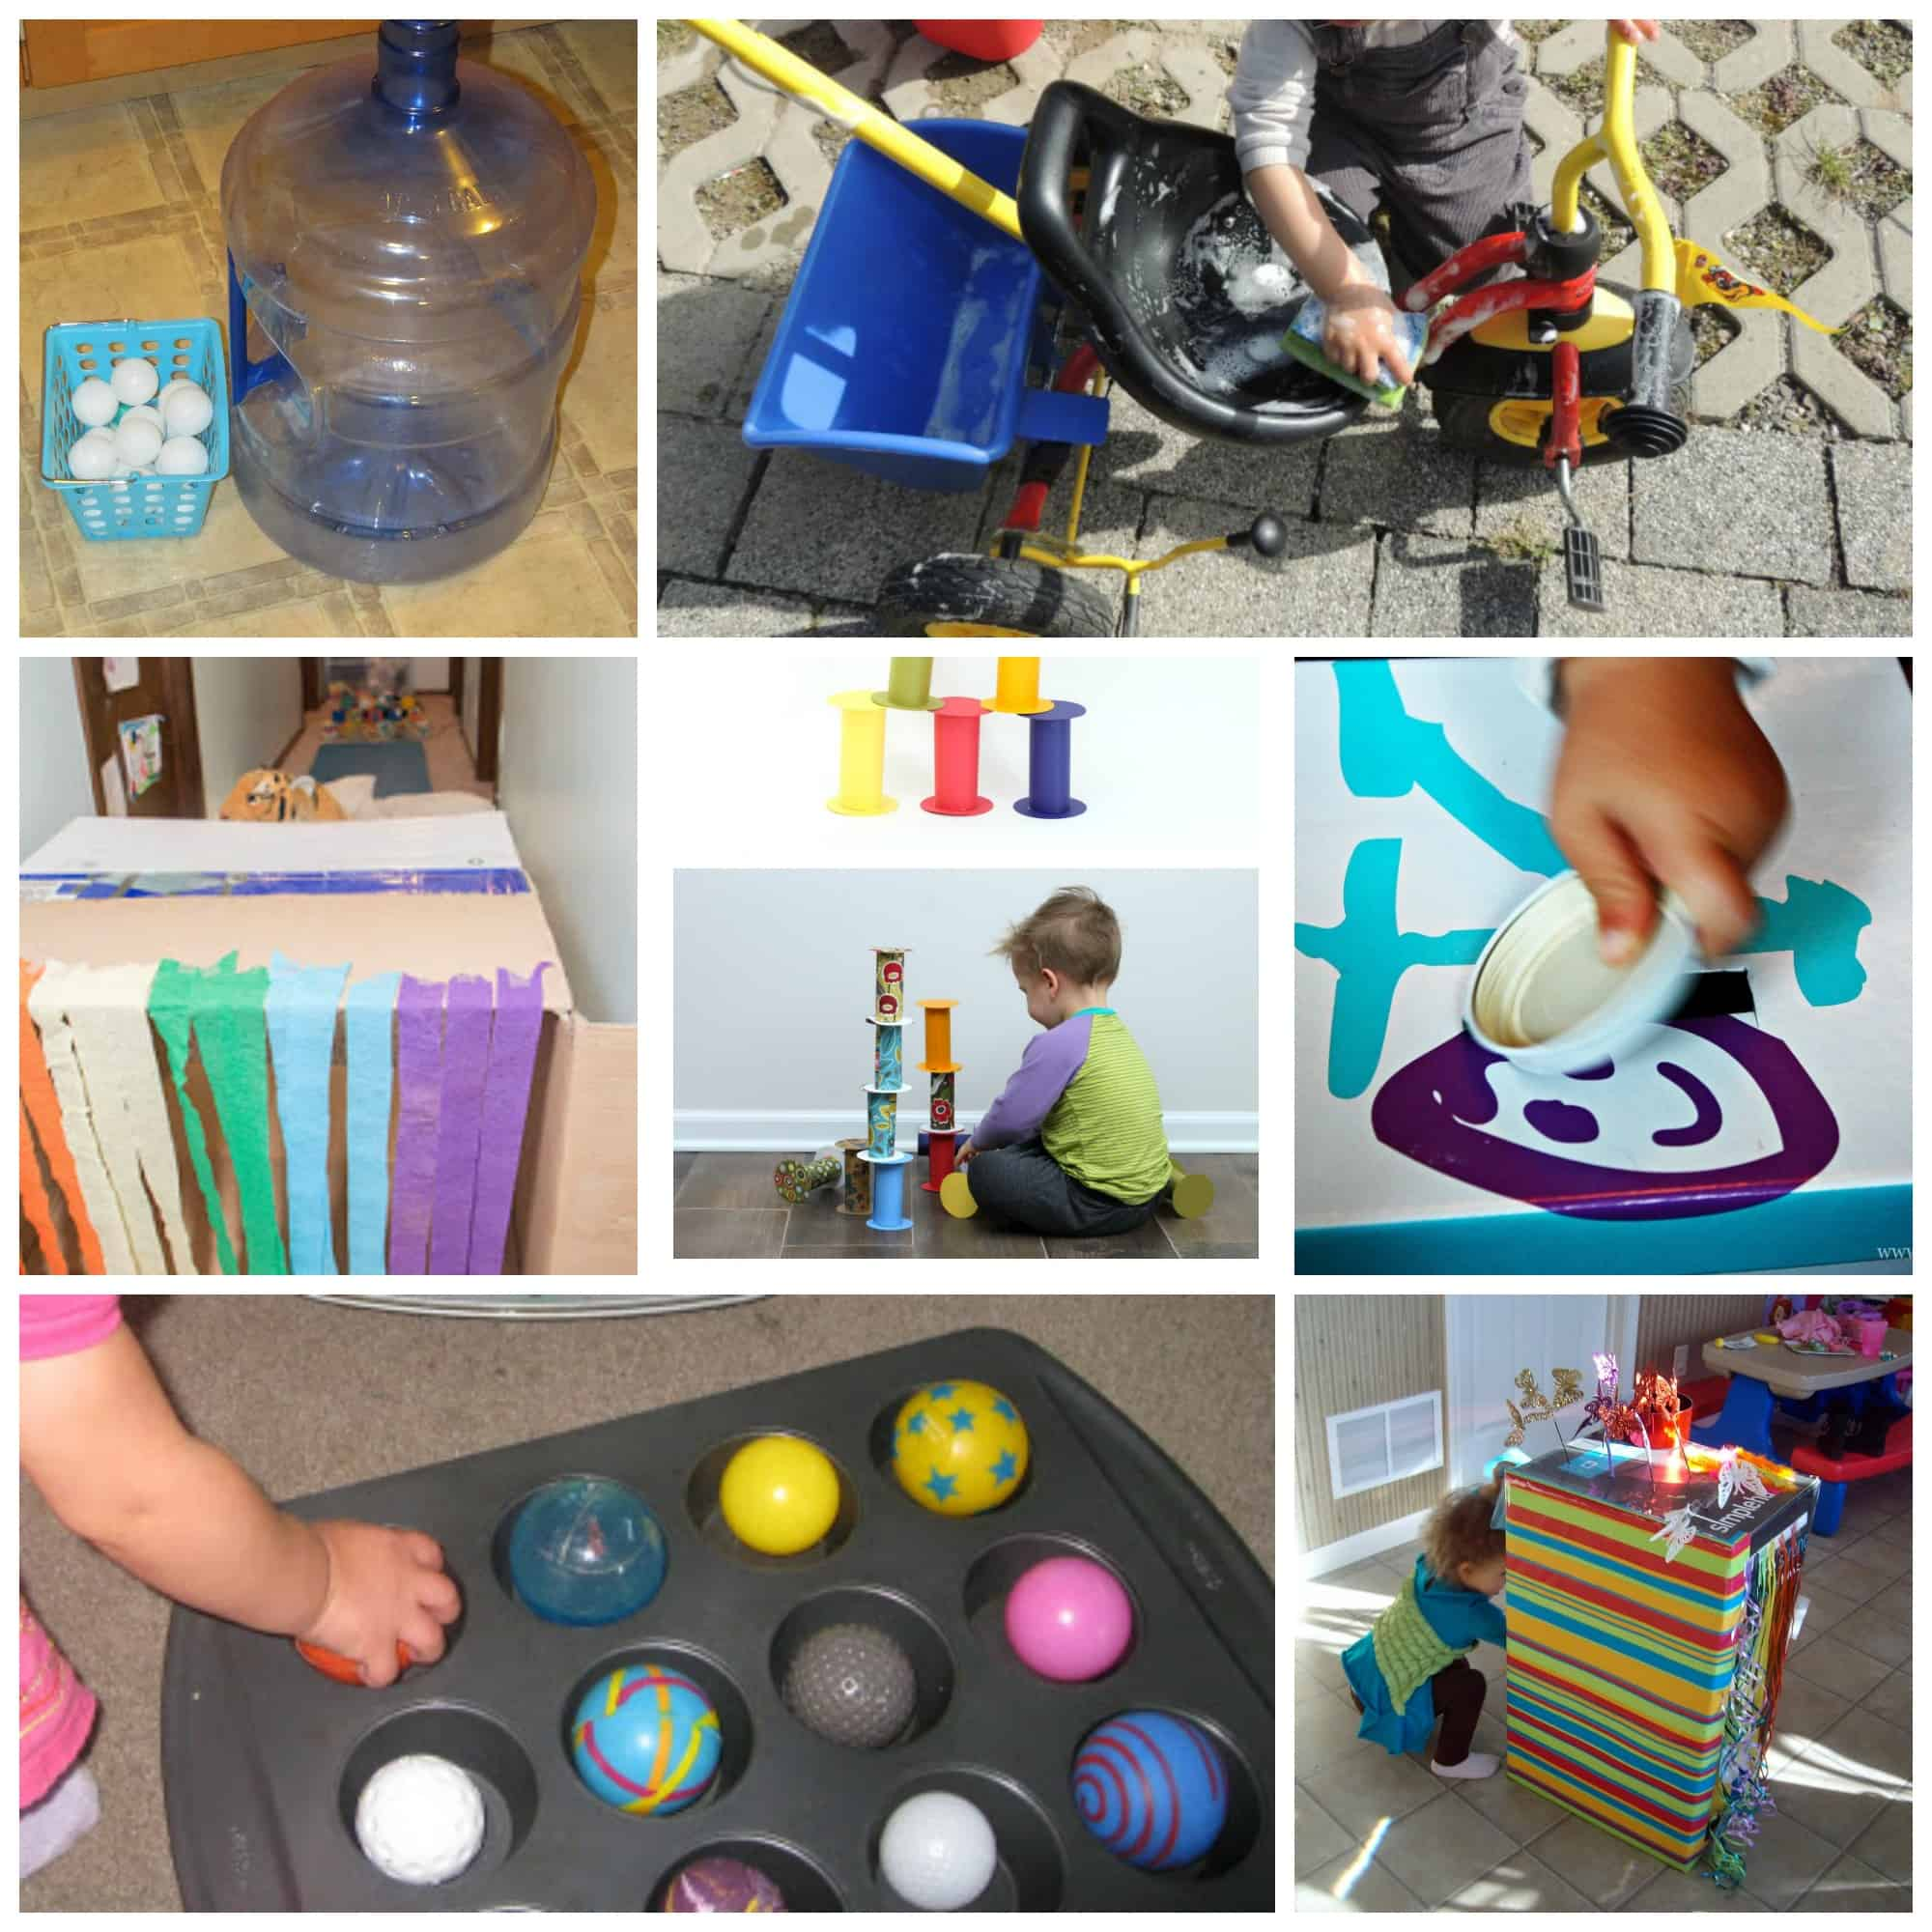 Worksheets For 1 Year Olds : Activities for year olds views from a step stool